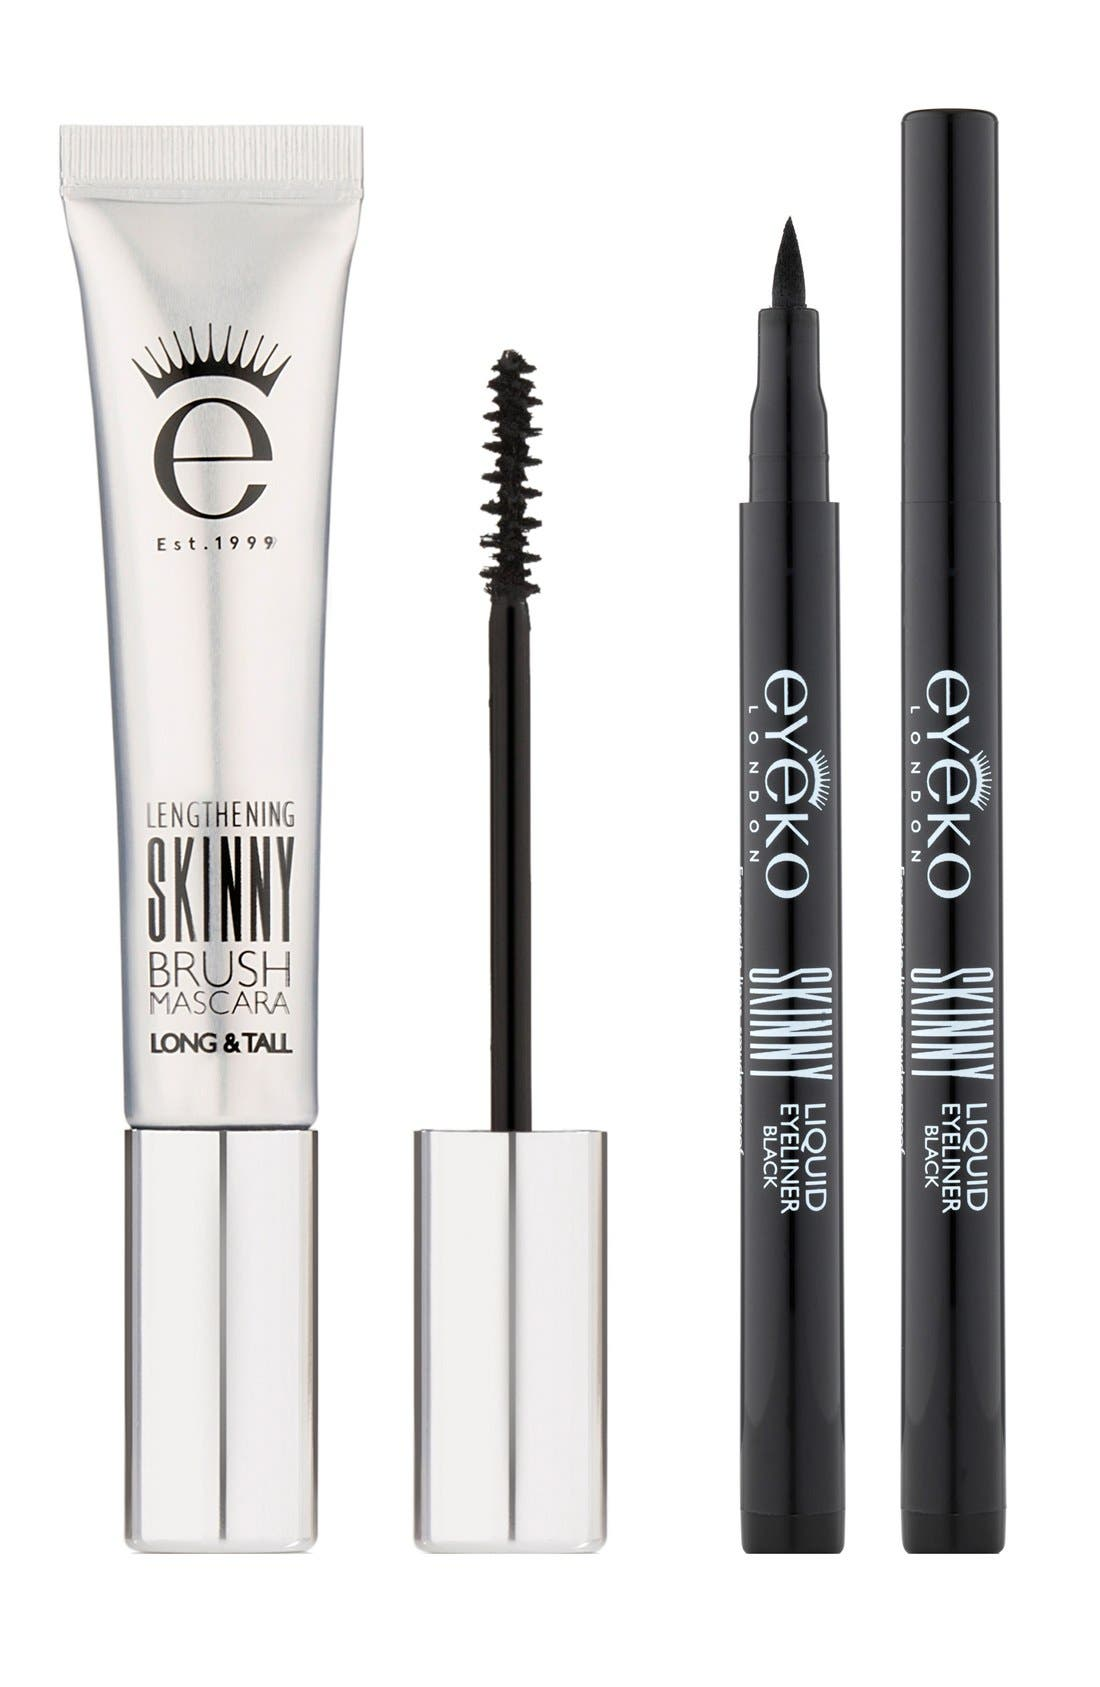 'Skinny' Mascara & Eyeliner Duo,                             Main thumbnail 1, color,